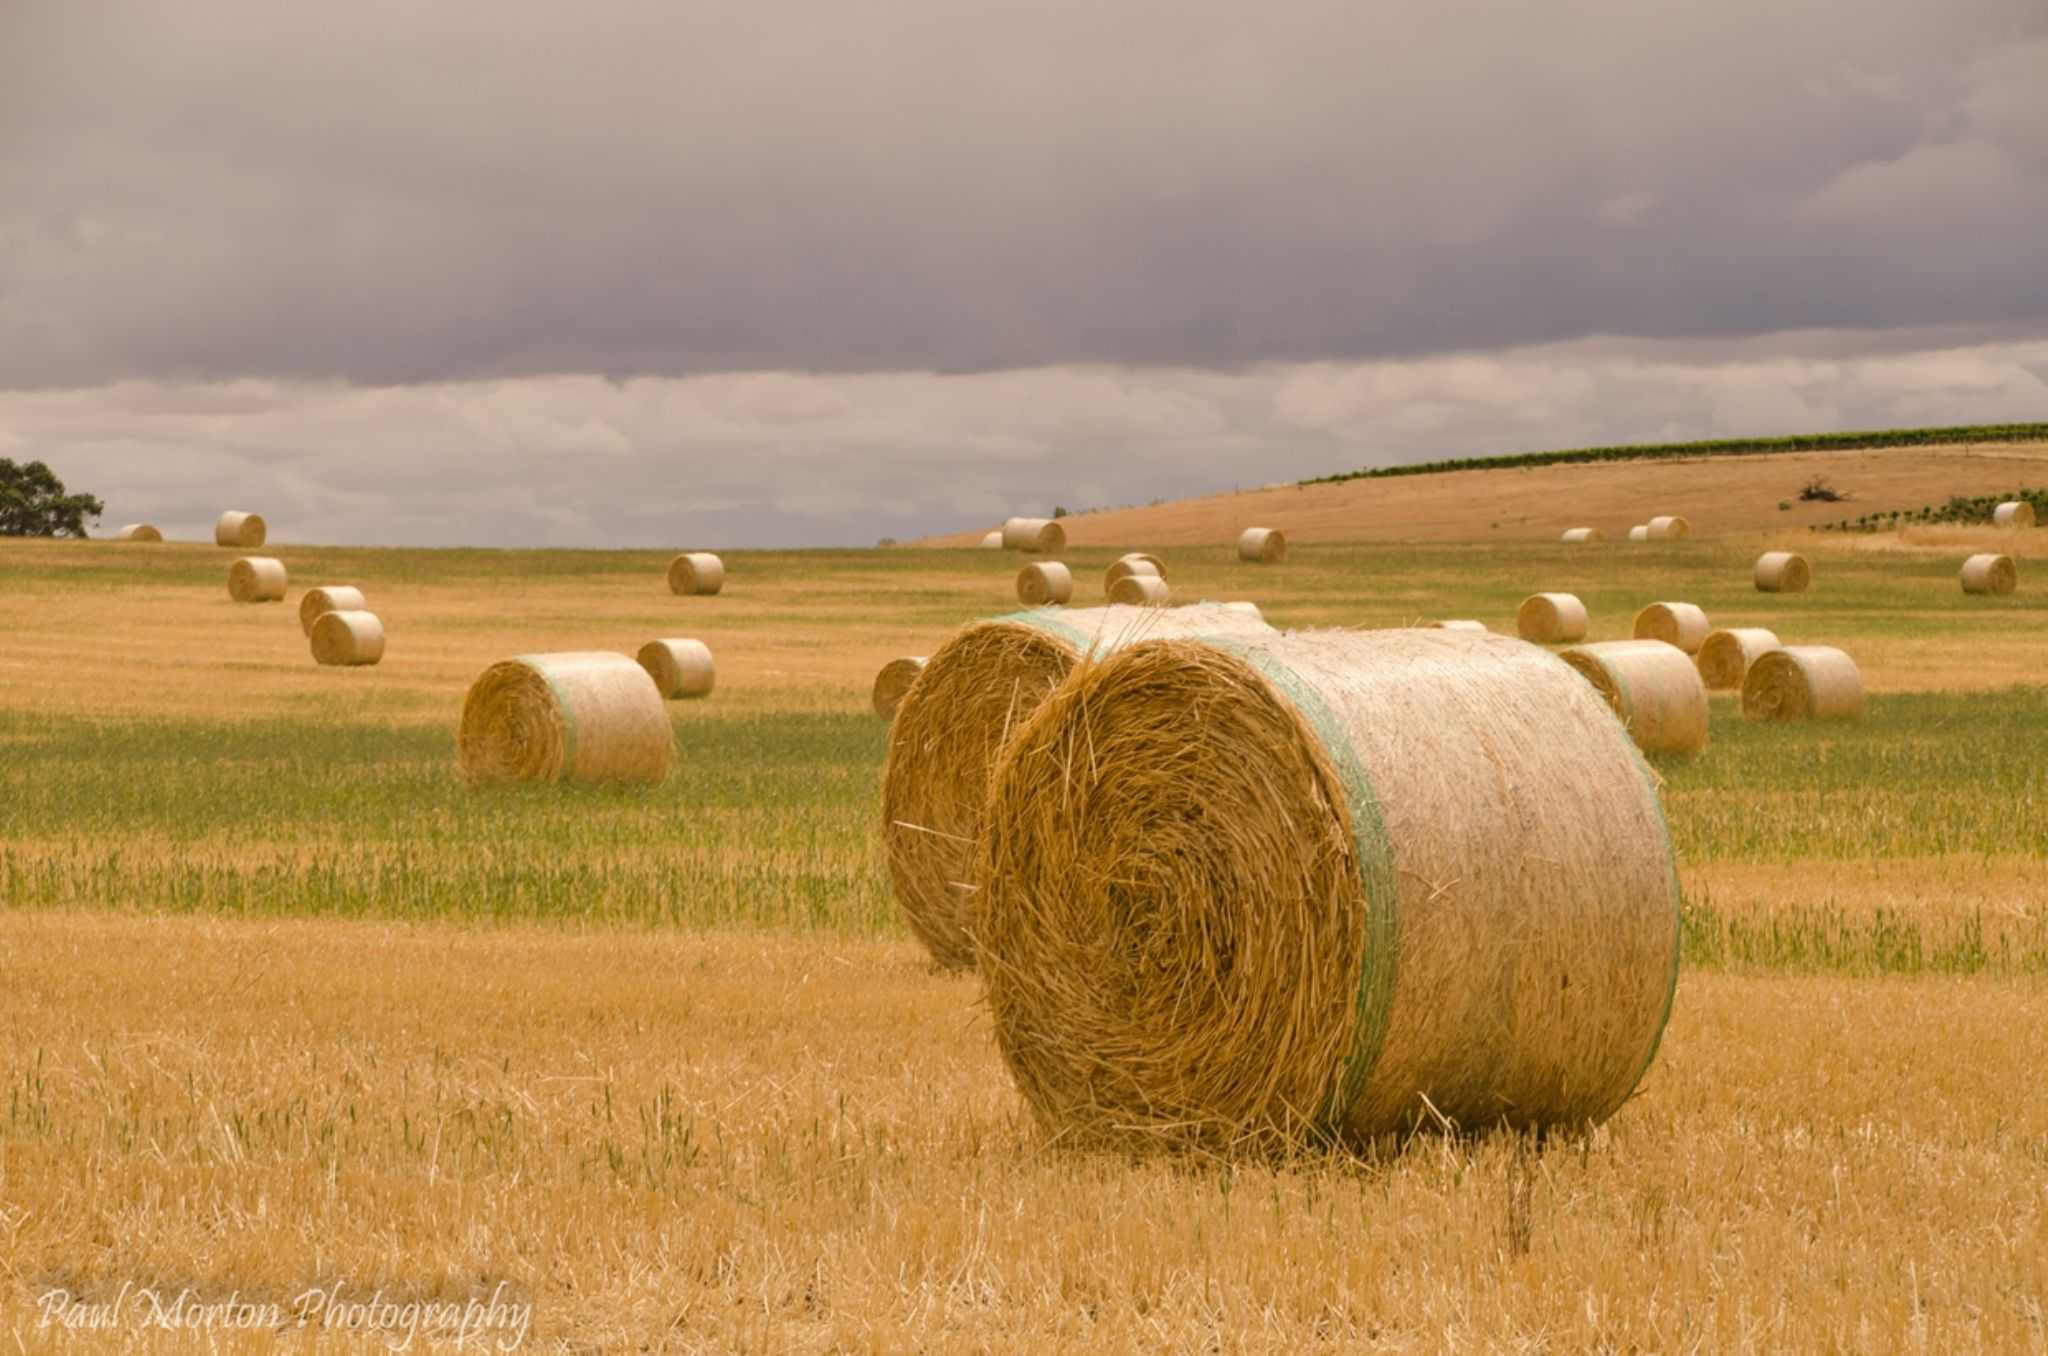 Hay bales by Paul Morton